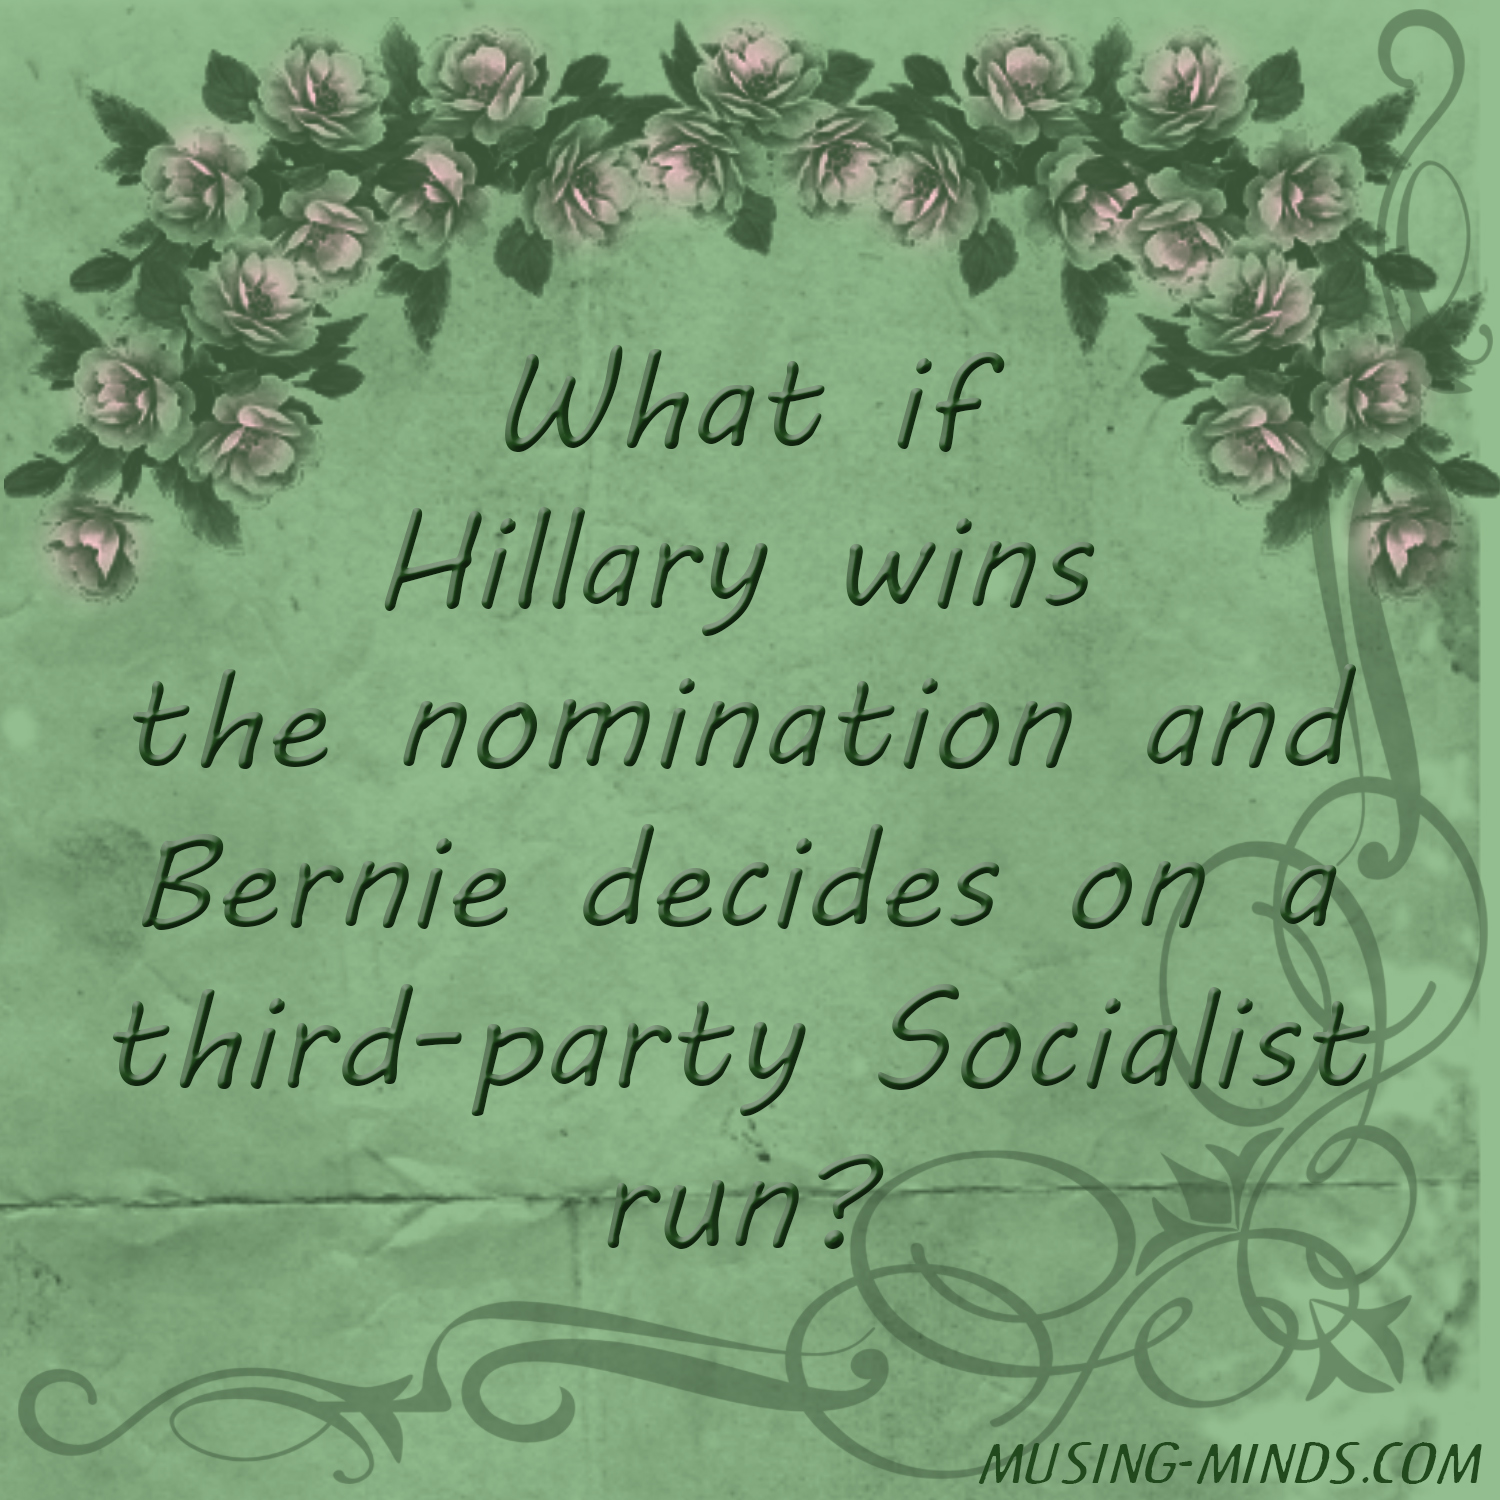 What if Hillary wins the nomination and Bernie decides on a third-party socialist run?